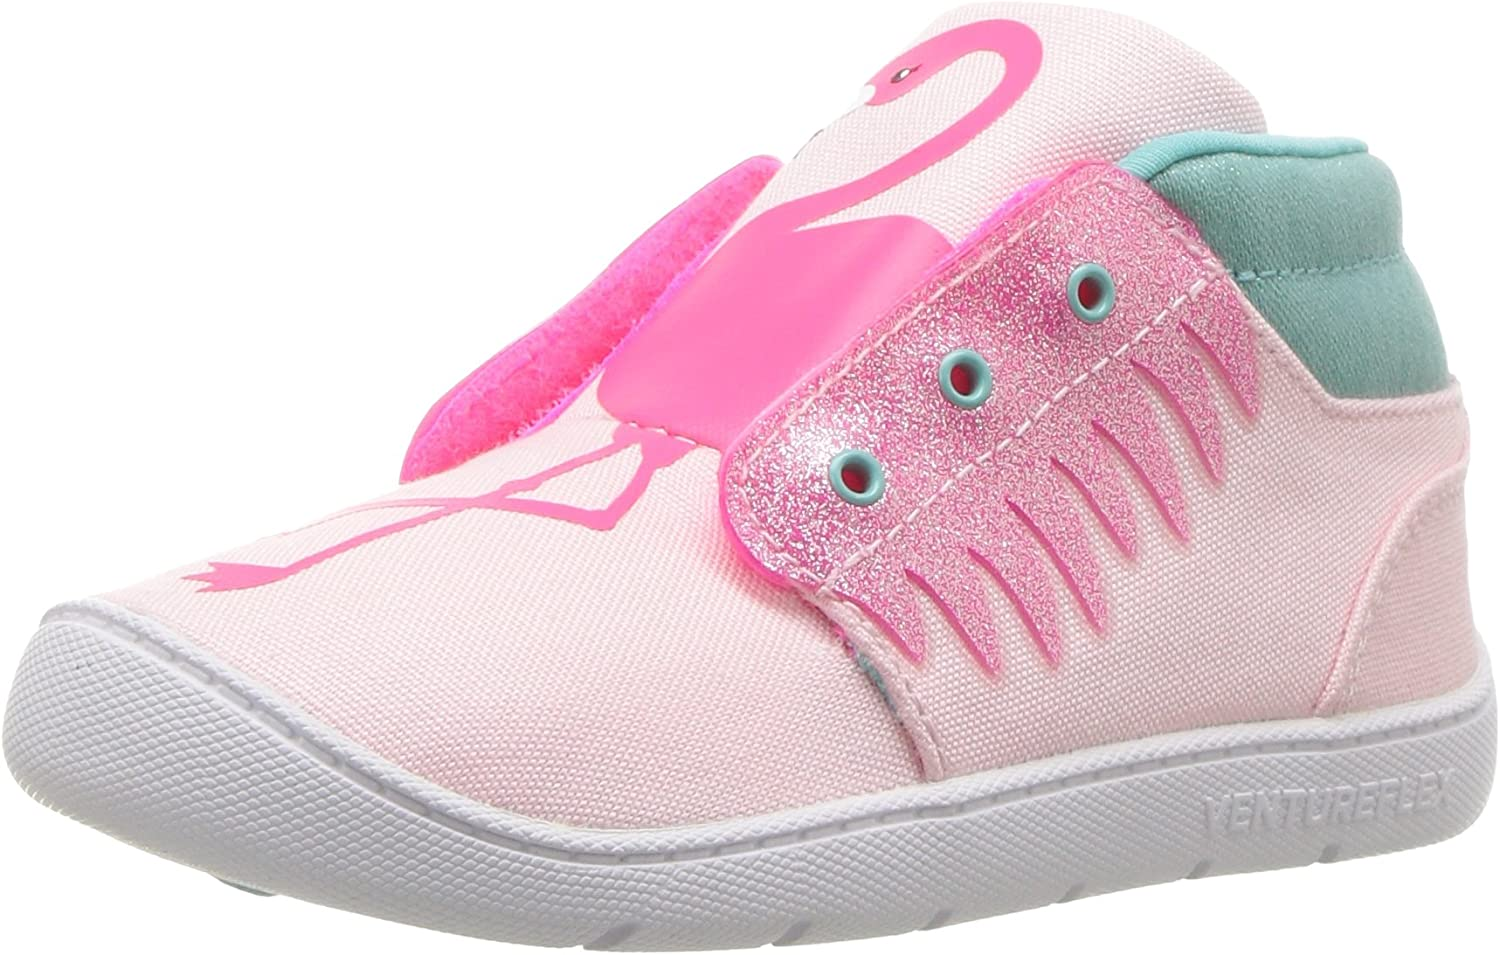 Reebok Unisex-Baby VF Chukka Critter Luster Sneaker FEET Challenge the lowest price Pink Sales A